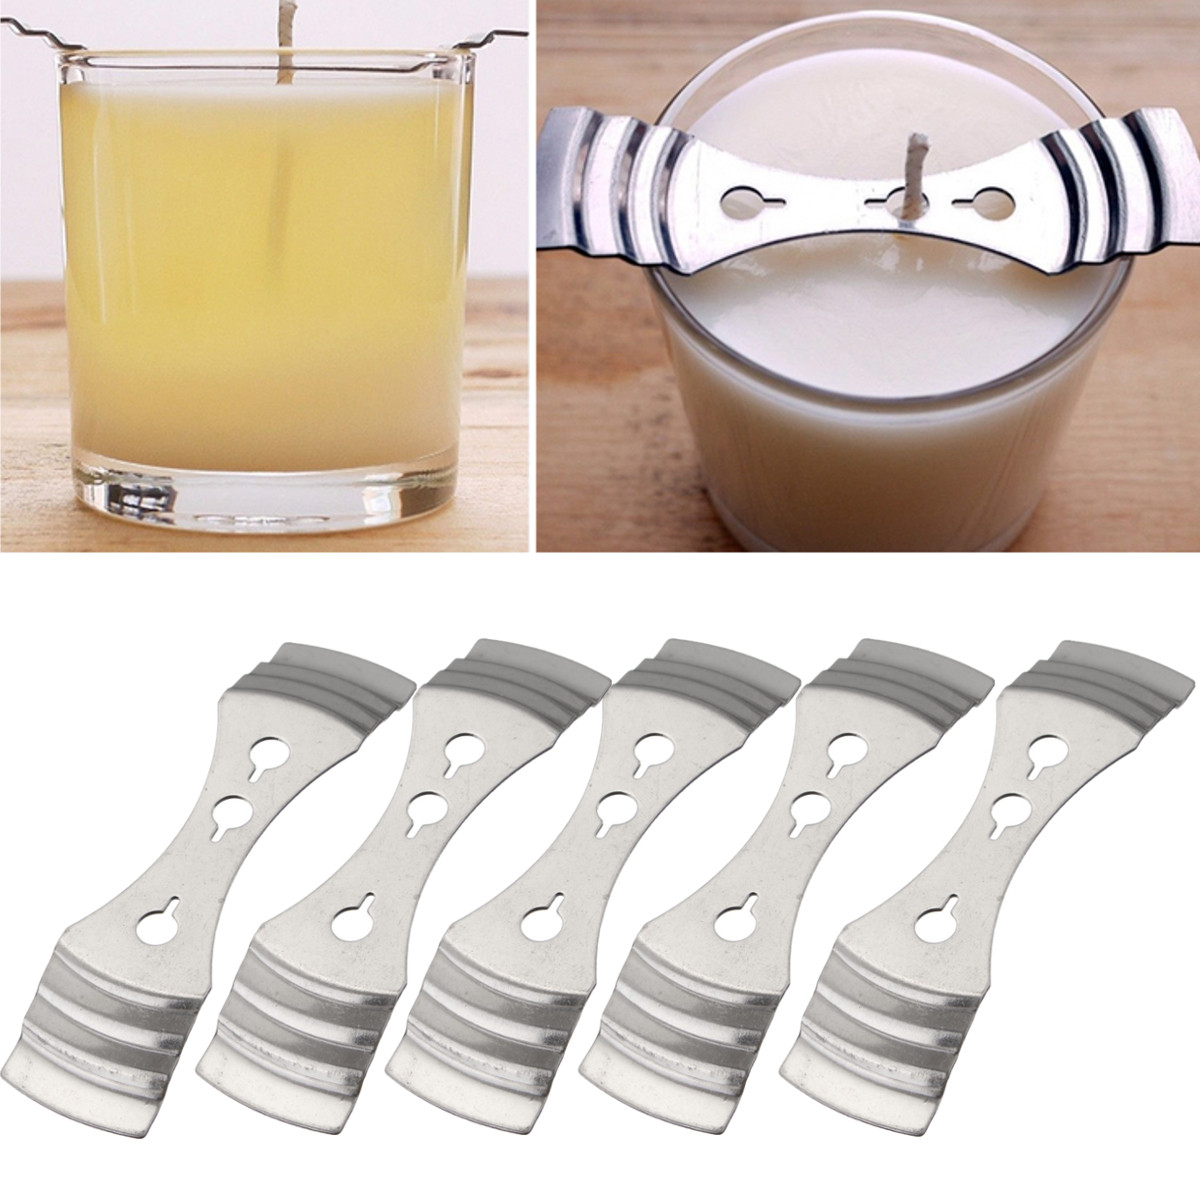 5Pcs Metal Candle Wicks Centering Device Holders Hole Clips